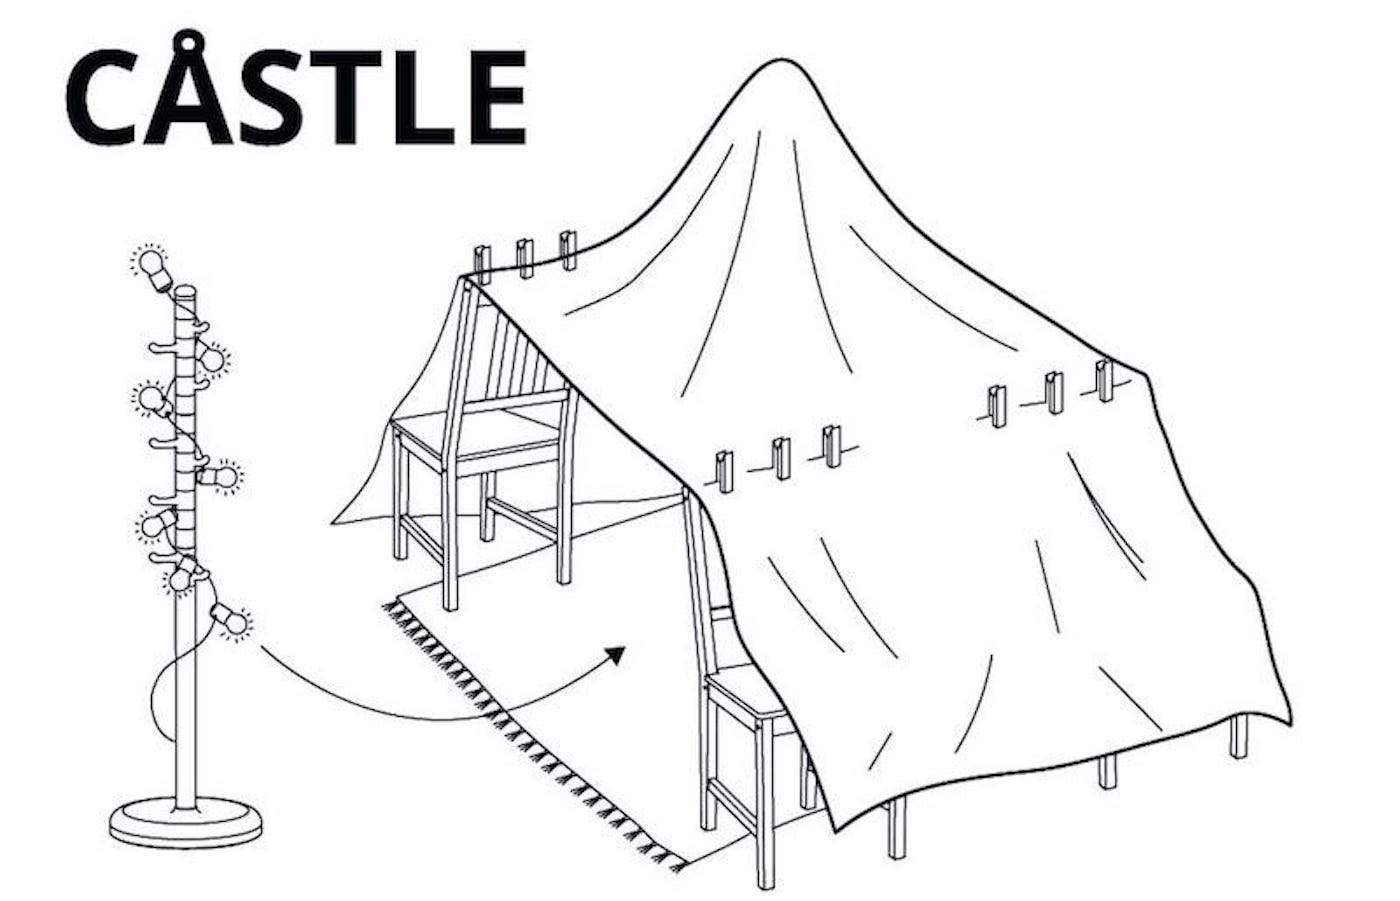 Ikea Released Instructions On How To Build The 6 Best Blanket Forts For Your Home Quarantine